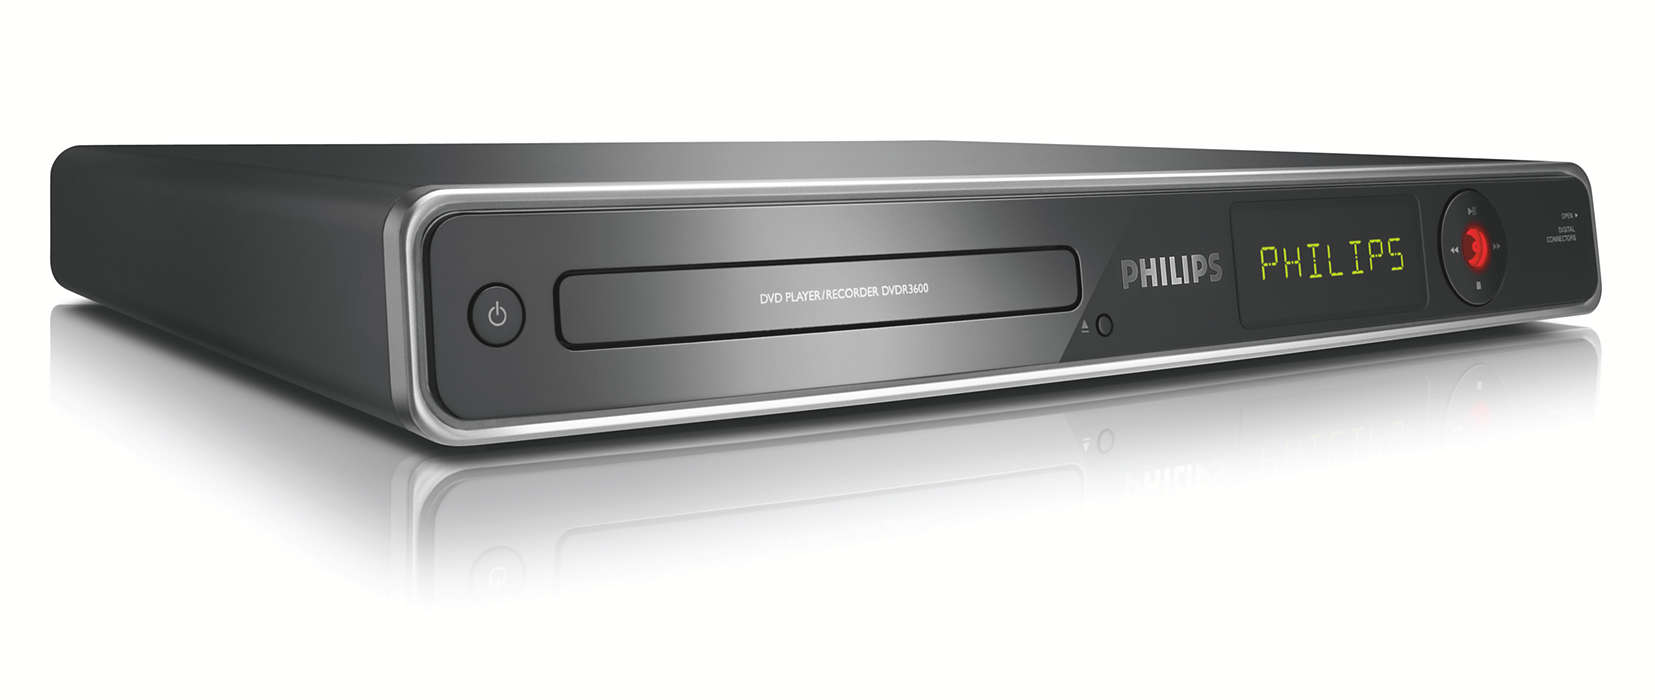 Dvd Player Recorder Dvdr3600 97 Philips Working Of Digital Versatile Disc Home Videos And Tv Shows Recorded On